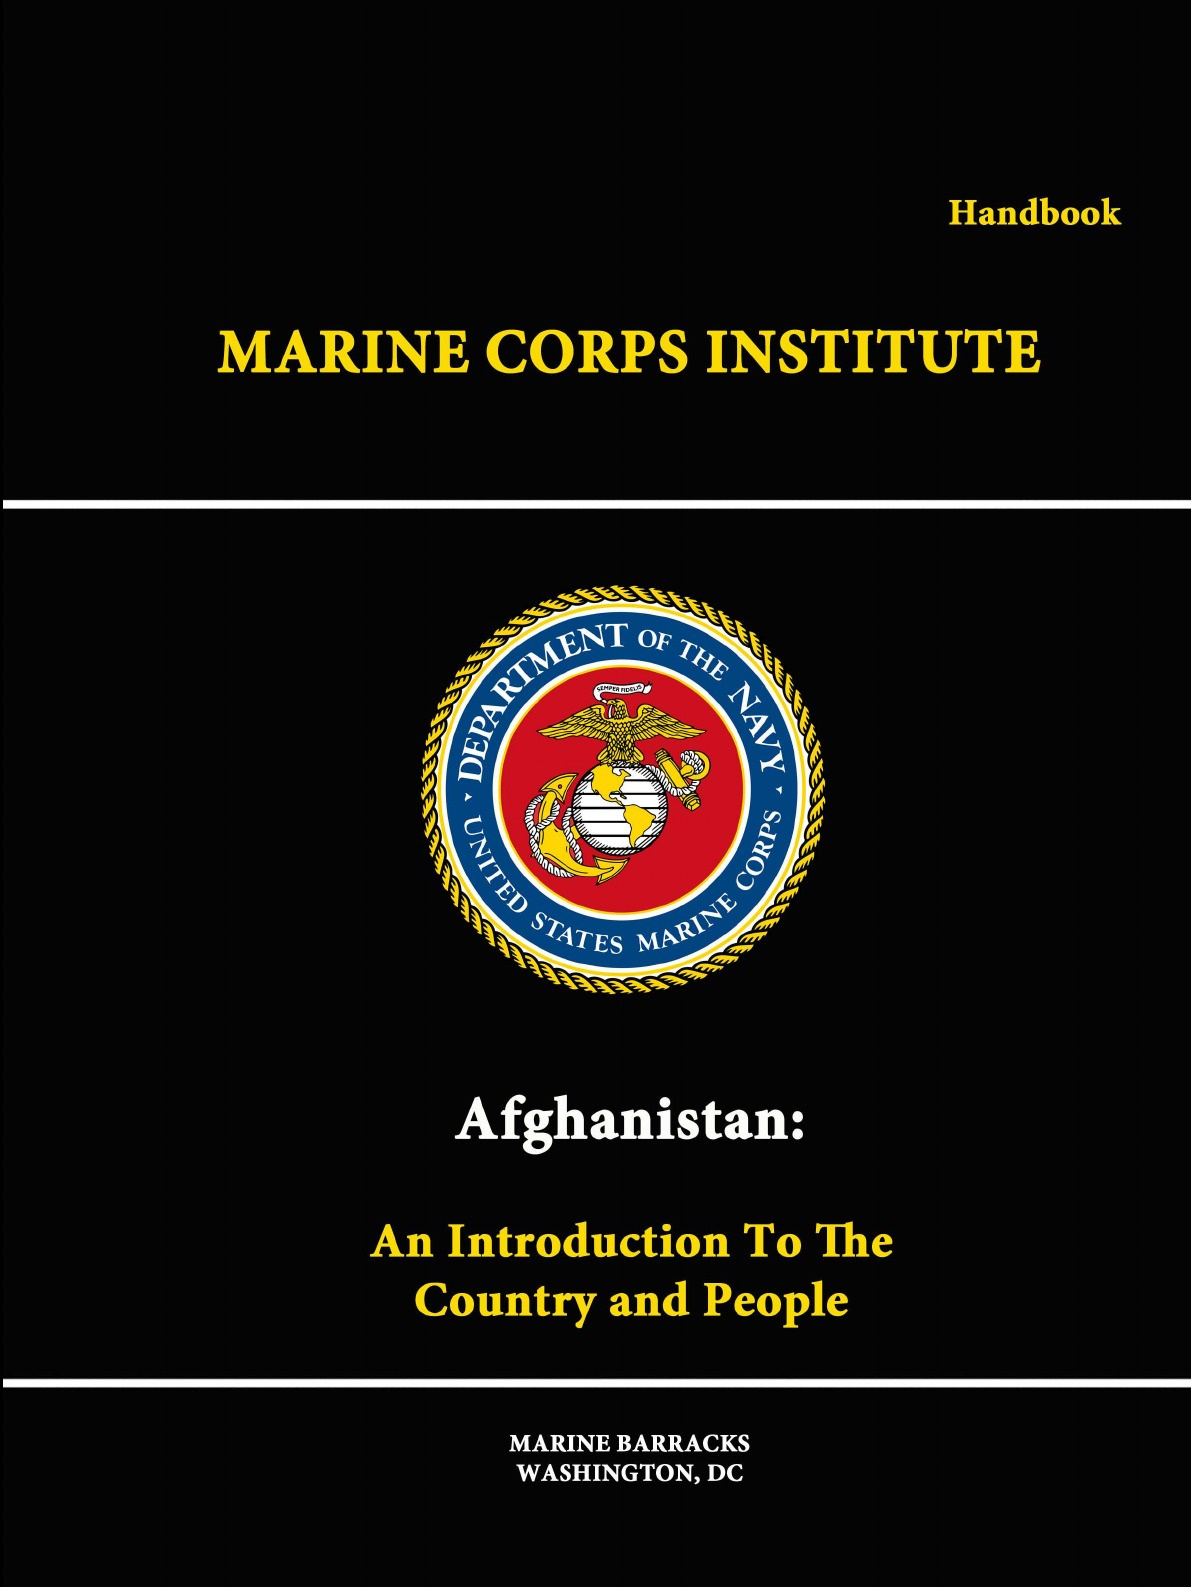 Marine Corps Institute Afghanistan. An Introduction To The Country And People - Handbook thor fossen i handbook of marine craft hydrodynamics and motion control